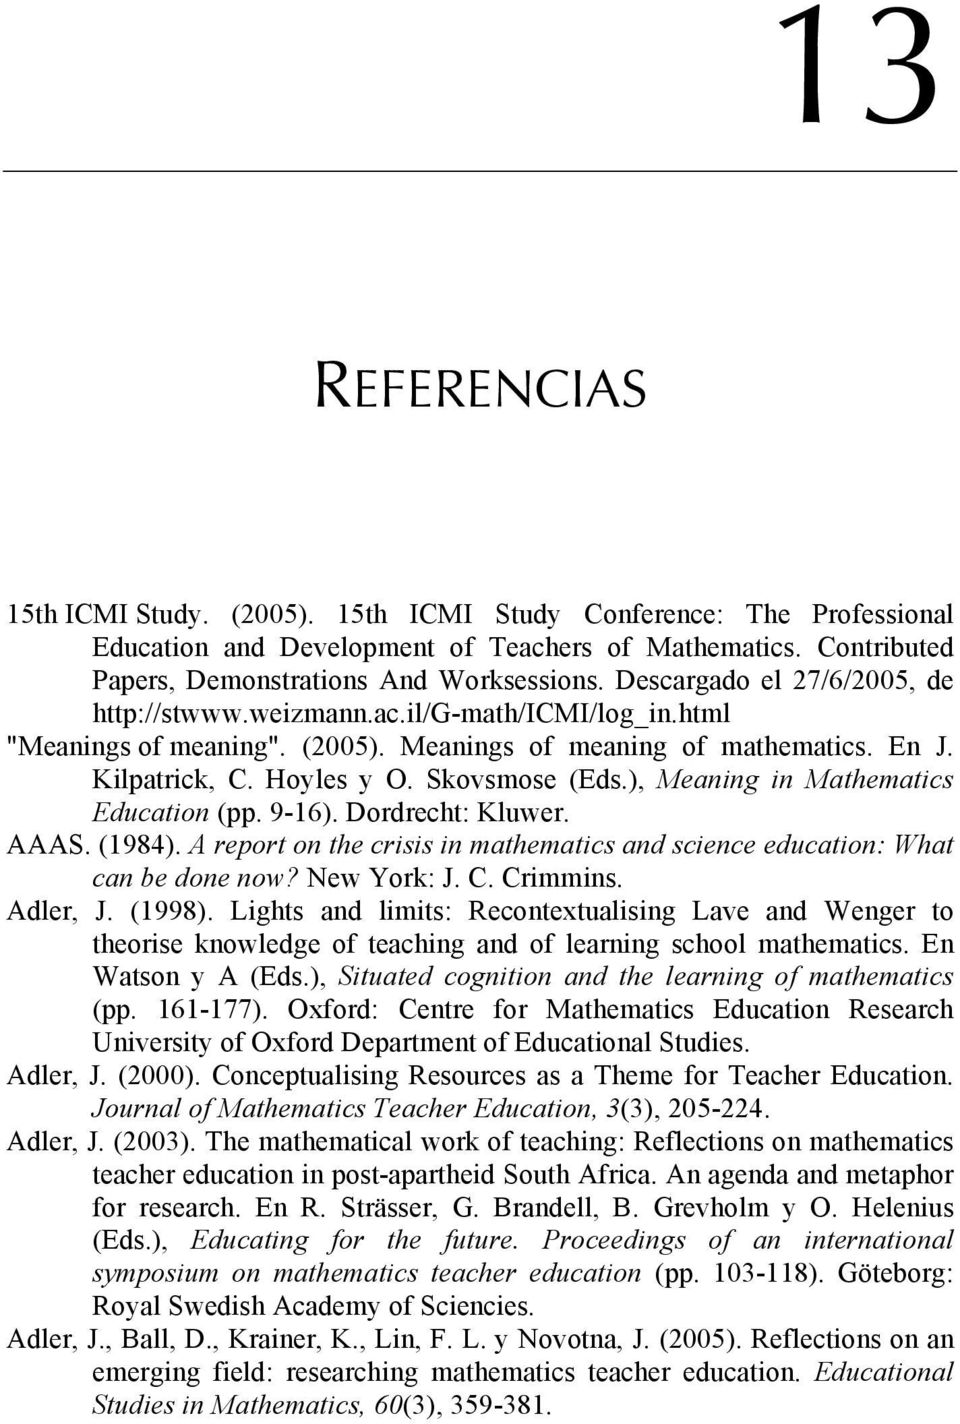 ), Meaning in Mathematics Education (pp. 9-16). Dordrecht: Kluwer. AAAS. (1984). A report on the crisis in mathematics and science education: What can be done now? New York: J. C. Crimmins. Adler, J.